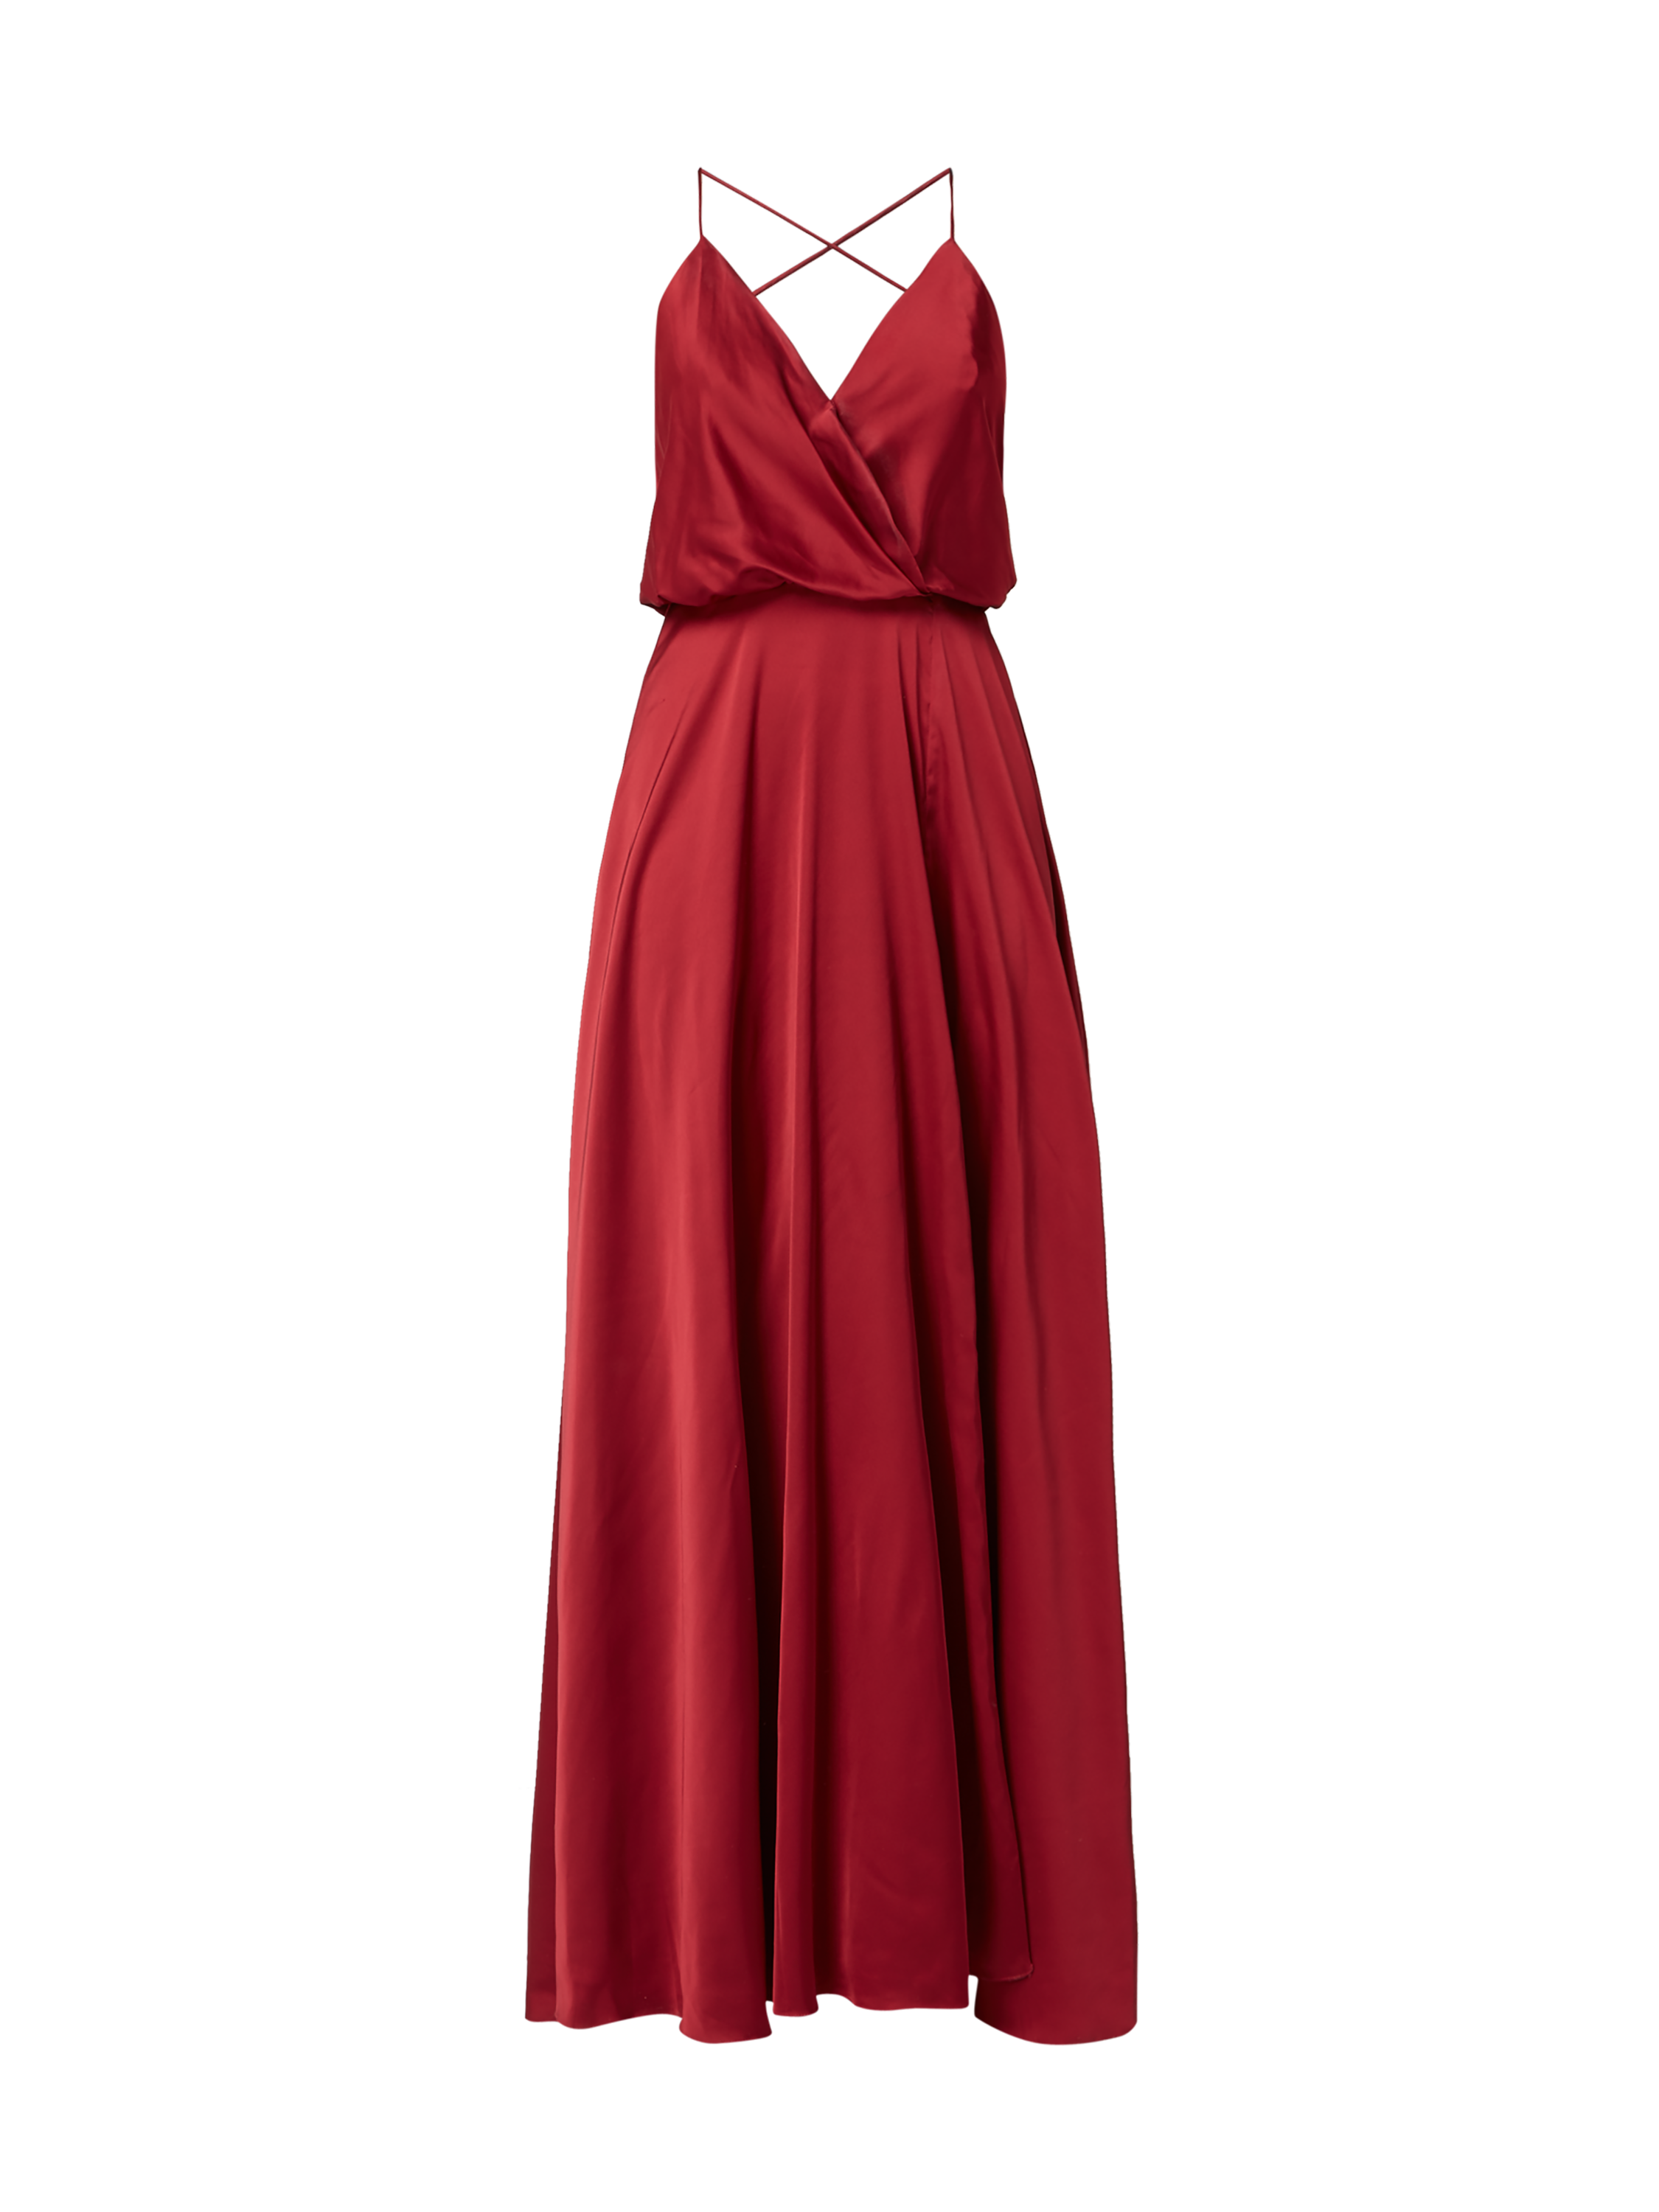 Unique kleid rot